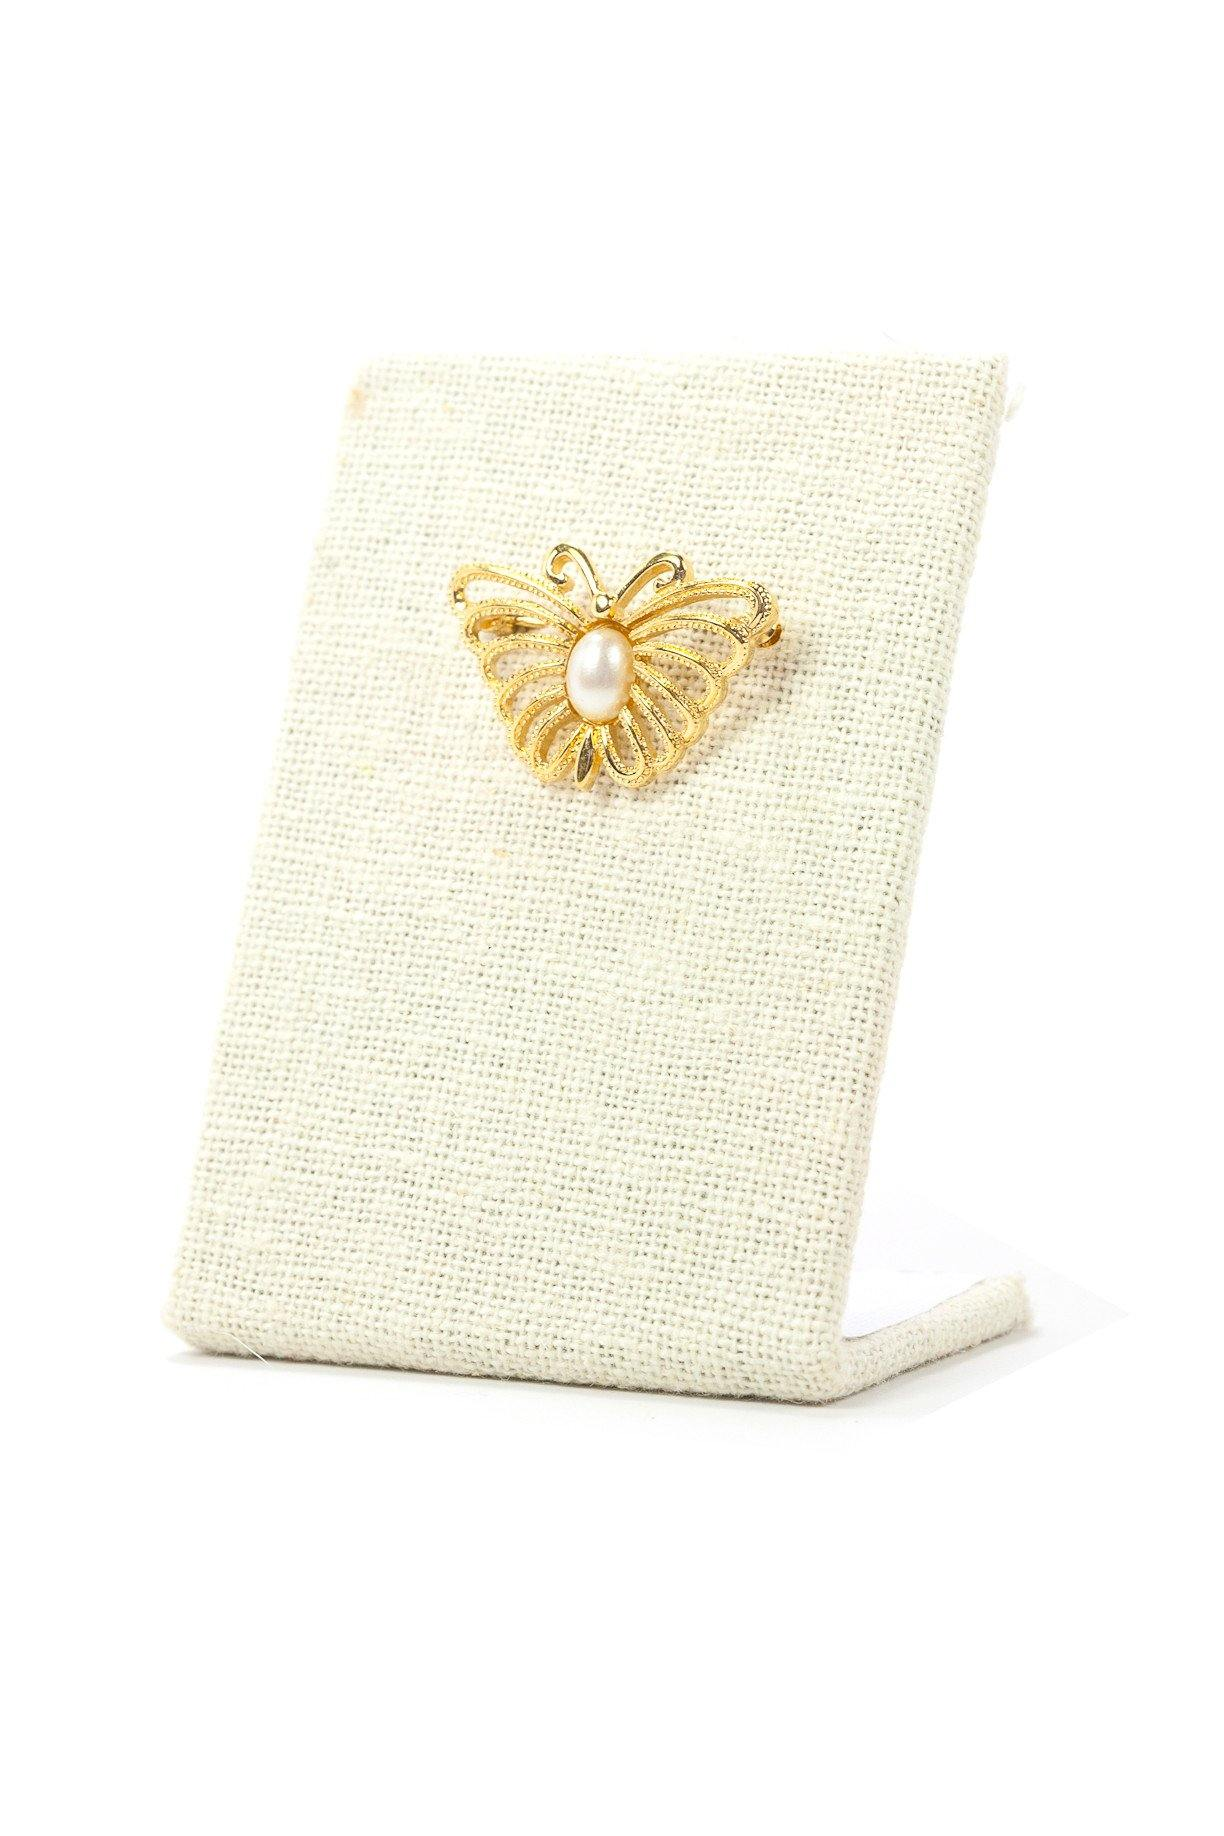 70's__Monet__Pearl Embellished Gold Butterfly Brooch